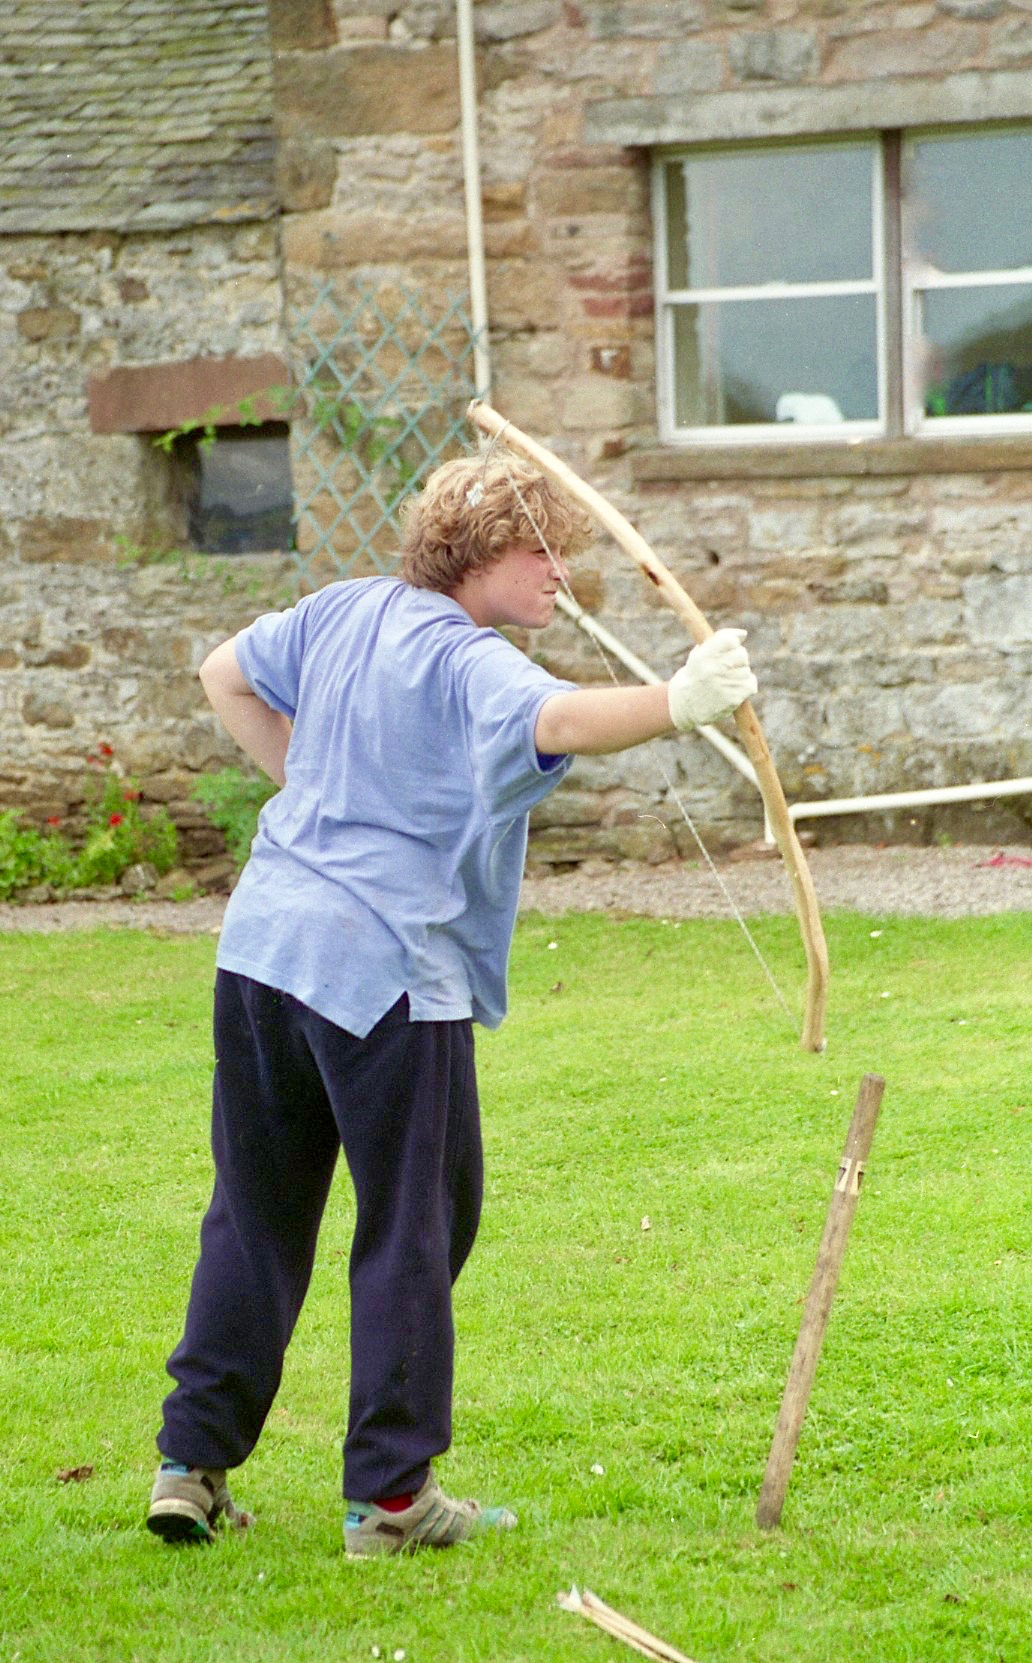 Sam firing bow and arrow 21.8.92 2